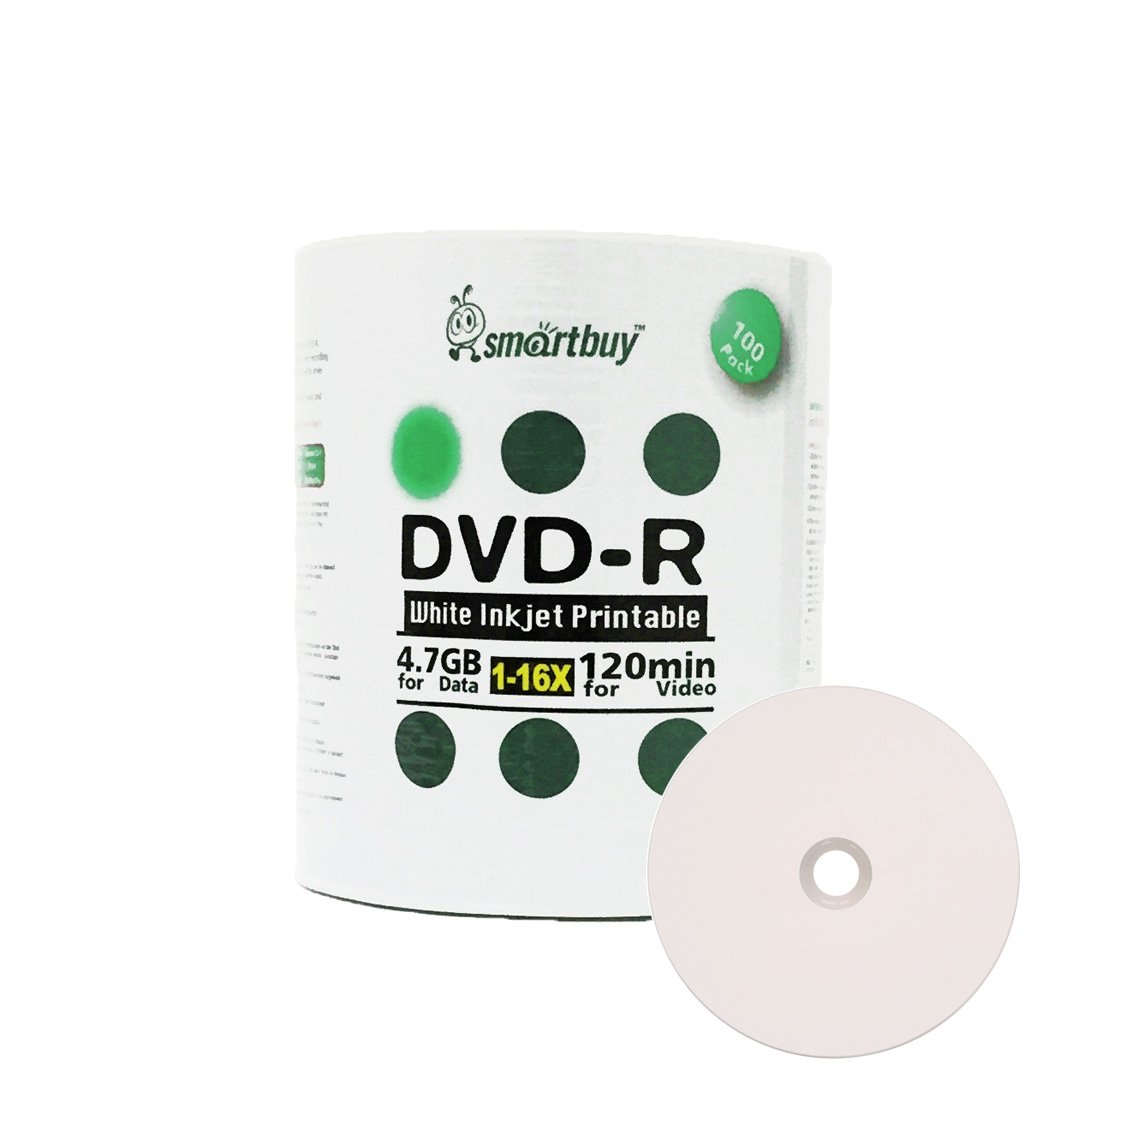 Smartbuy 100-disc 4.7gb/120min 16x DVD-R White Inkjet Hub Printable Blank Data Recordable Media Disc by Smartbuy